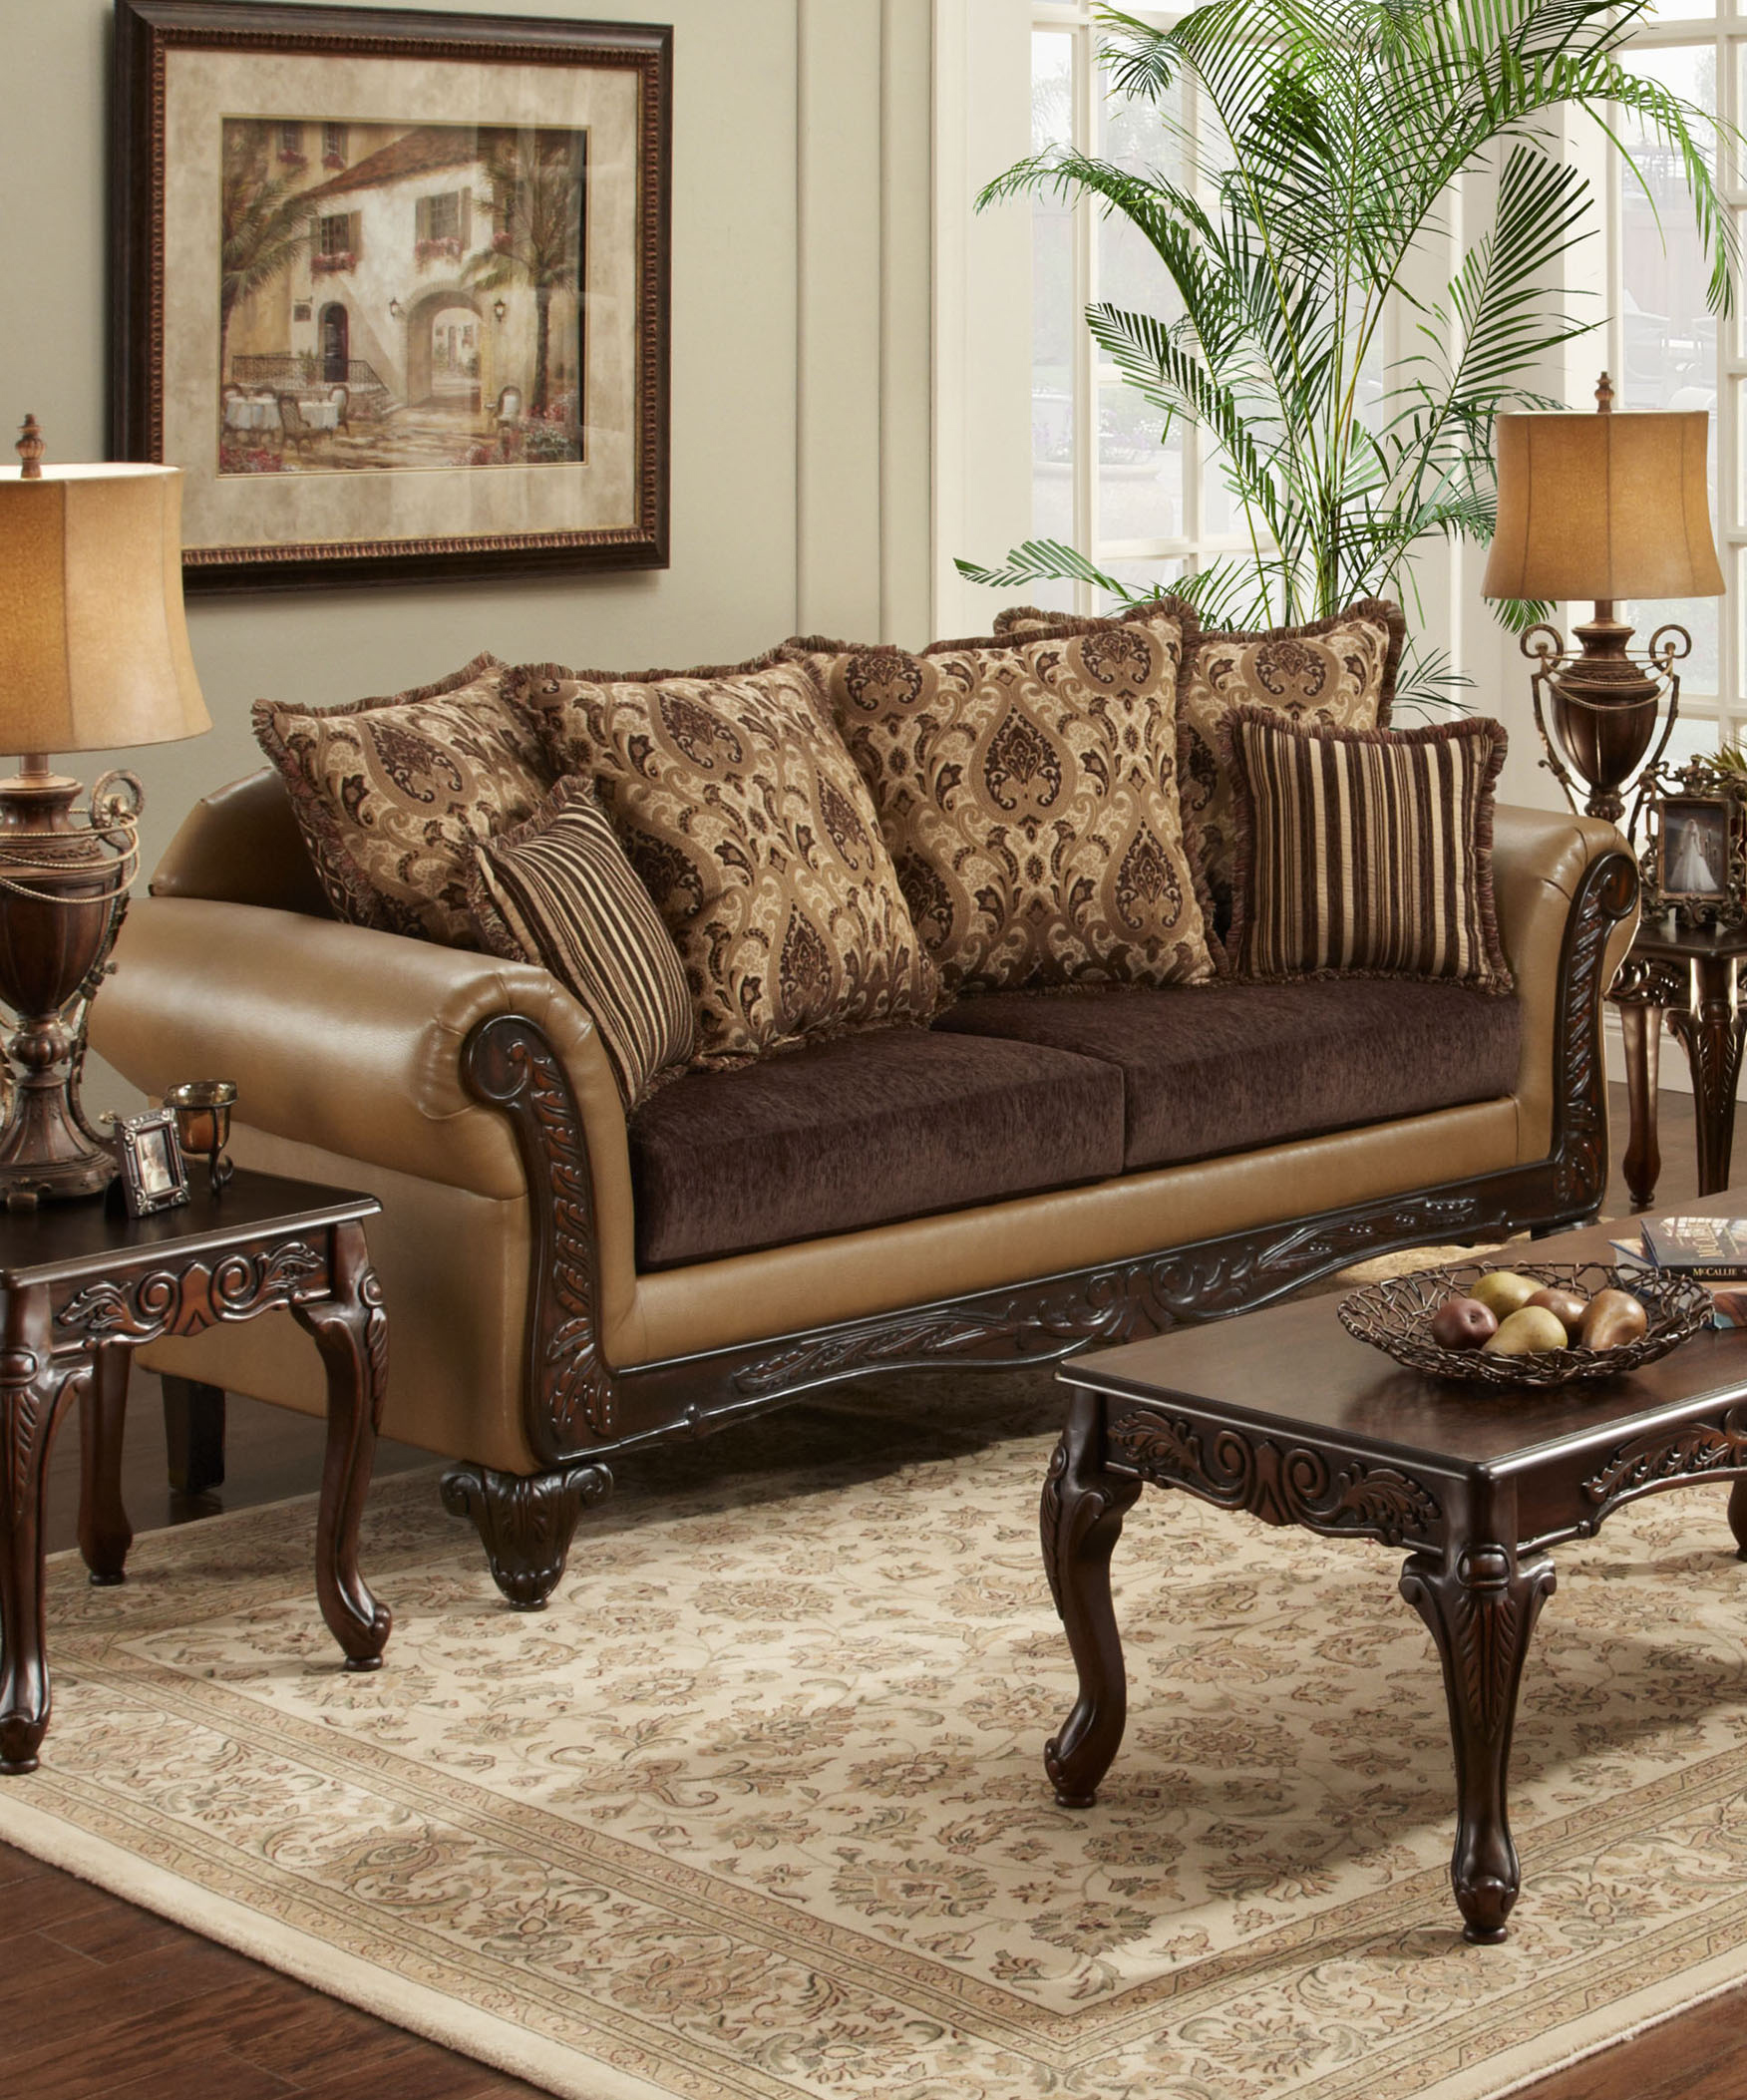 Mayfair Sofa In Bronze By Chelsea Home Furniture Sofas